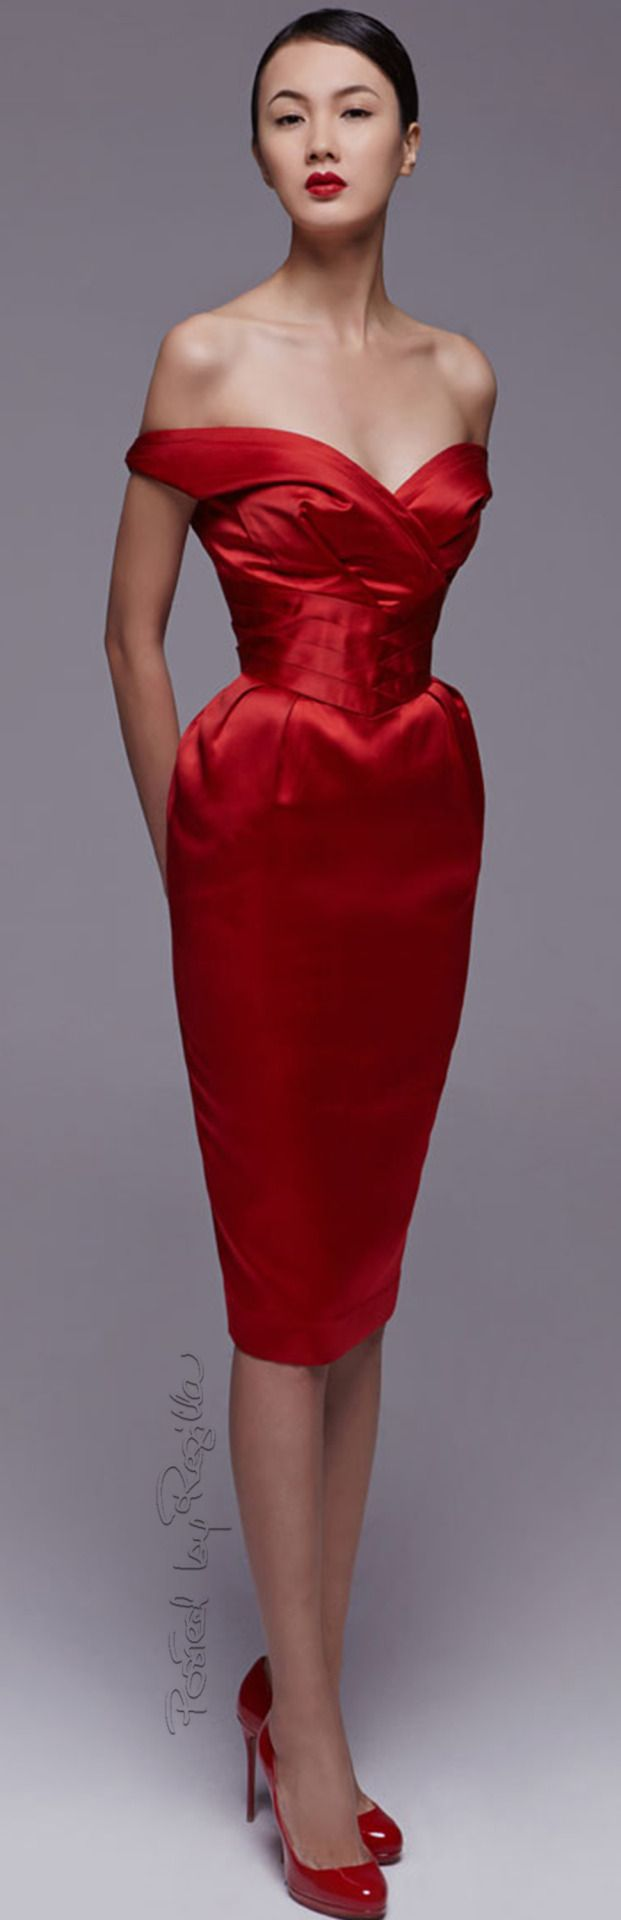 710 best Fashion-Red images on Pinterest | Fashion show, Walkway and Red